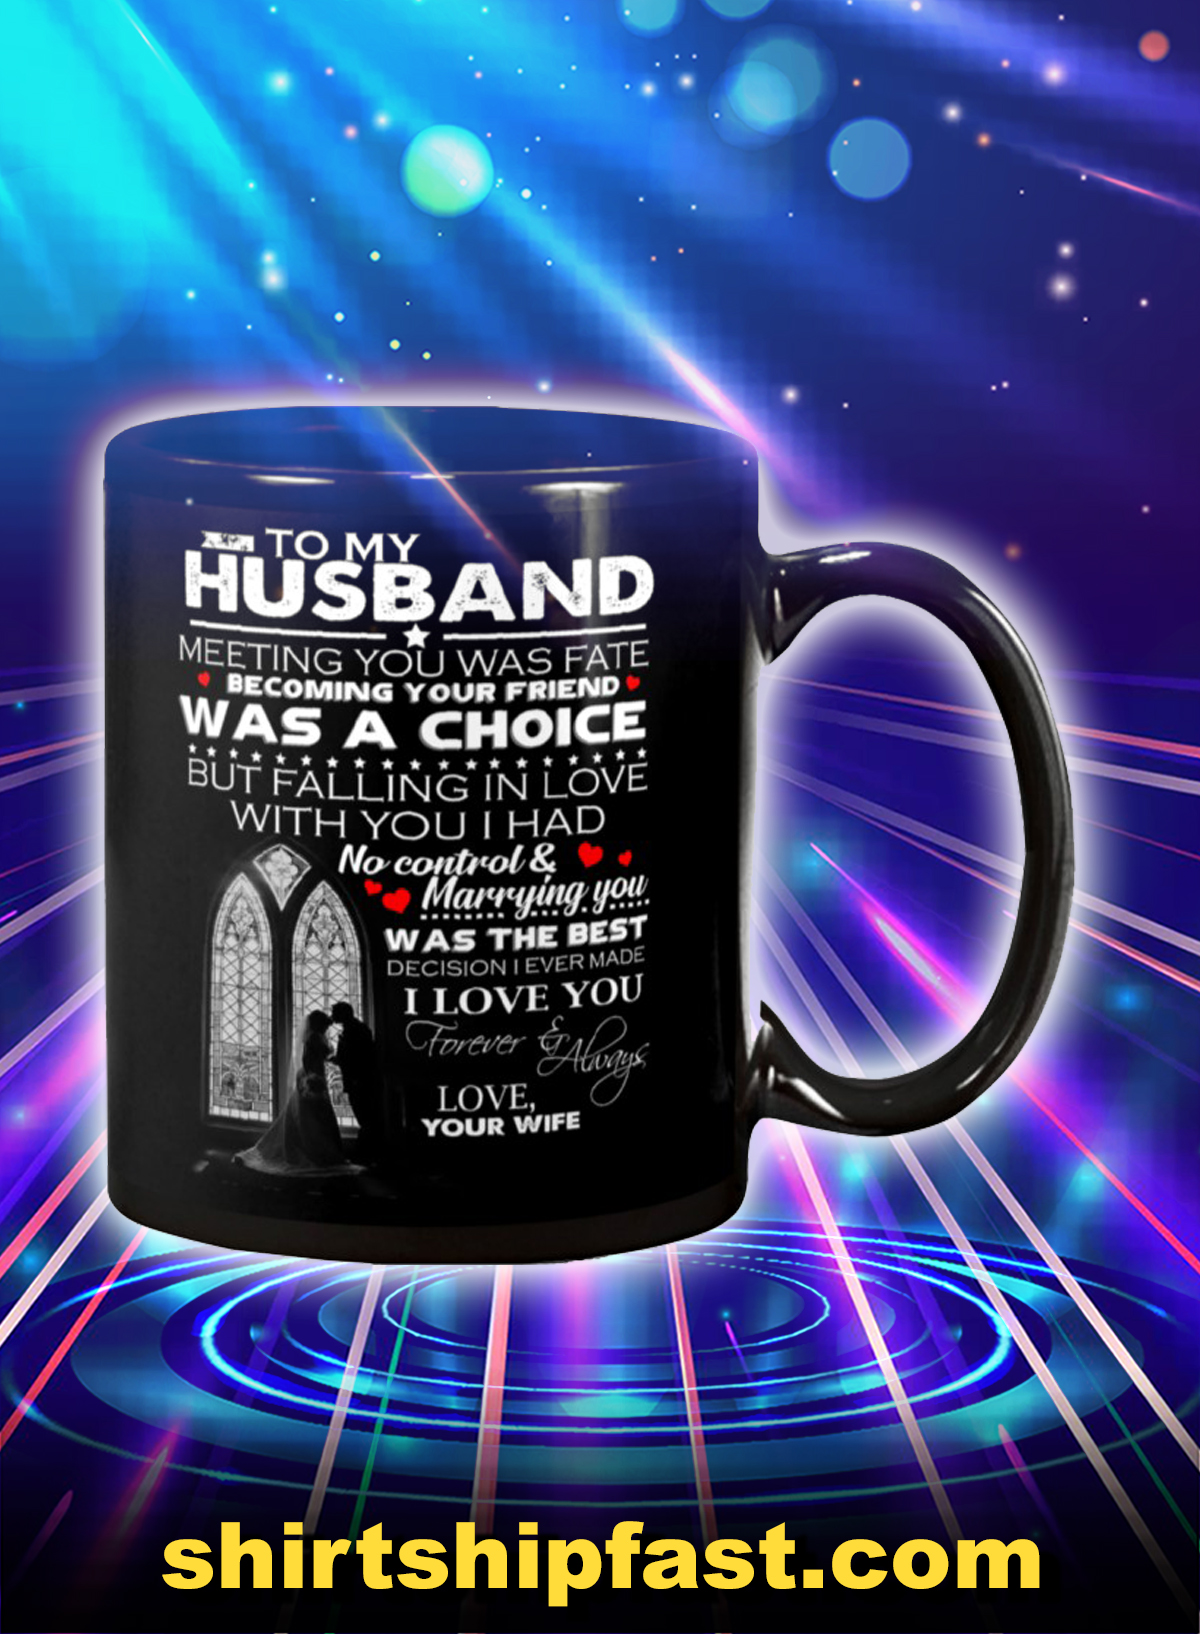 To my husband meeting you was fate love your wife mug